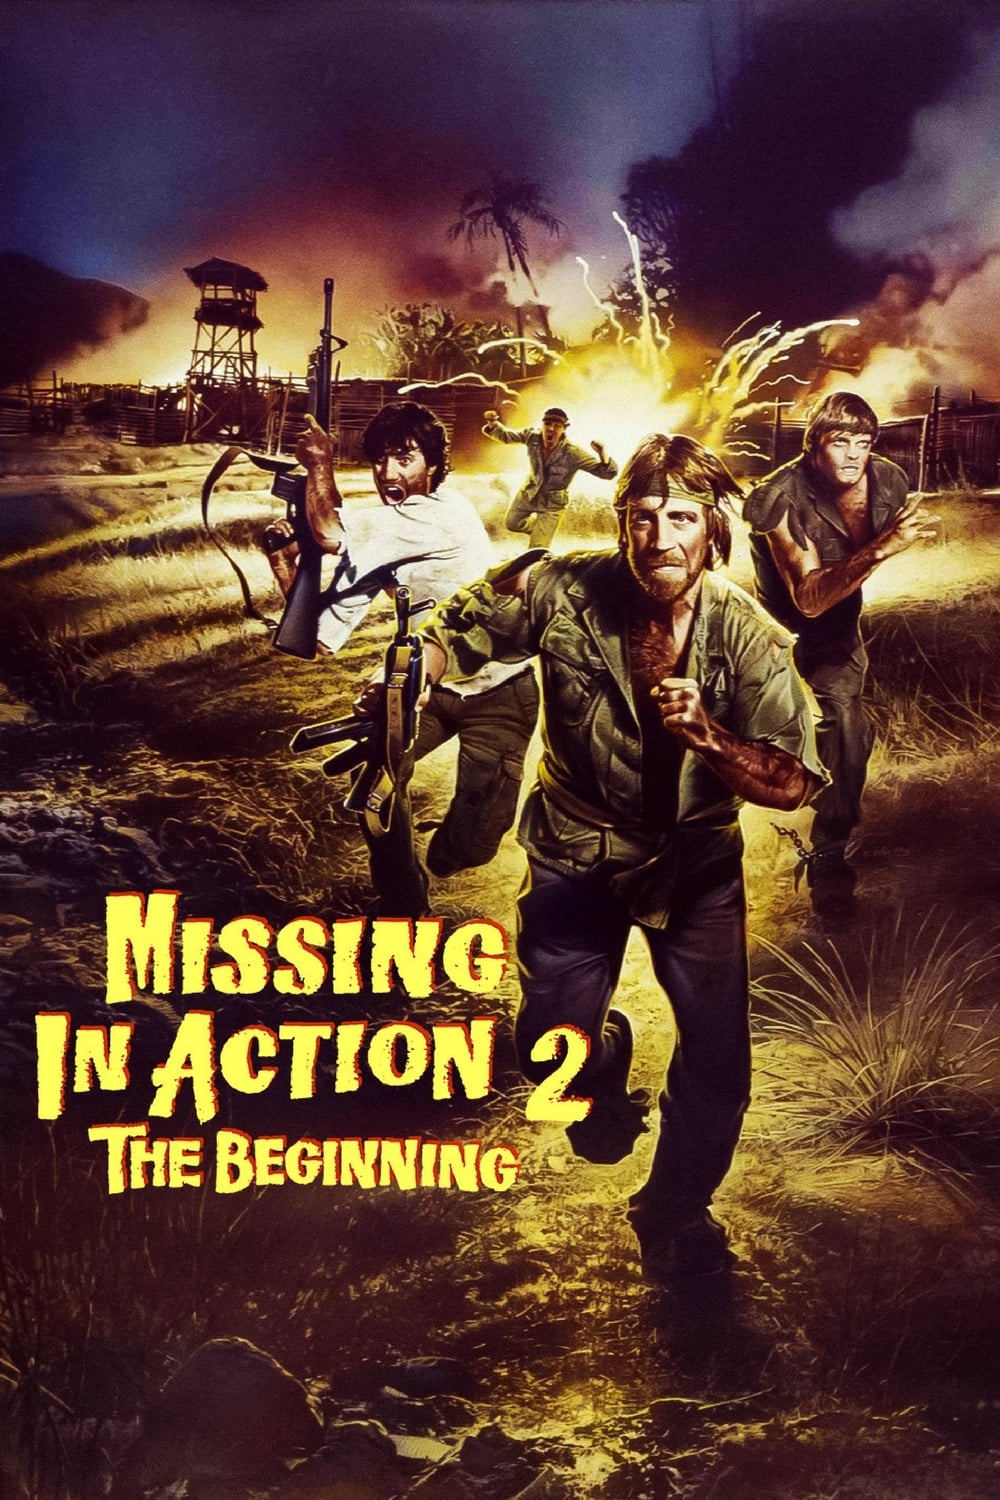 Missing In Action 2: The Beginning